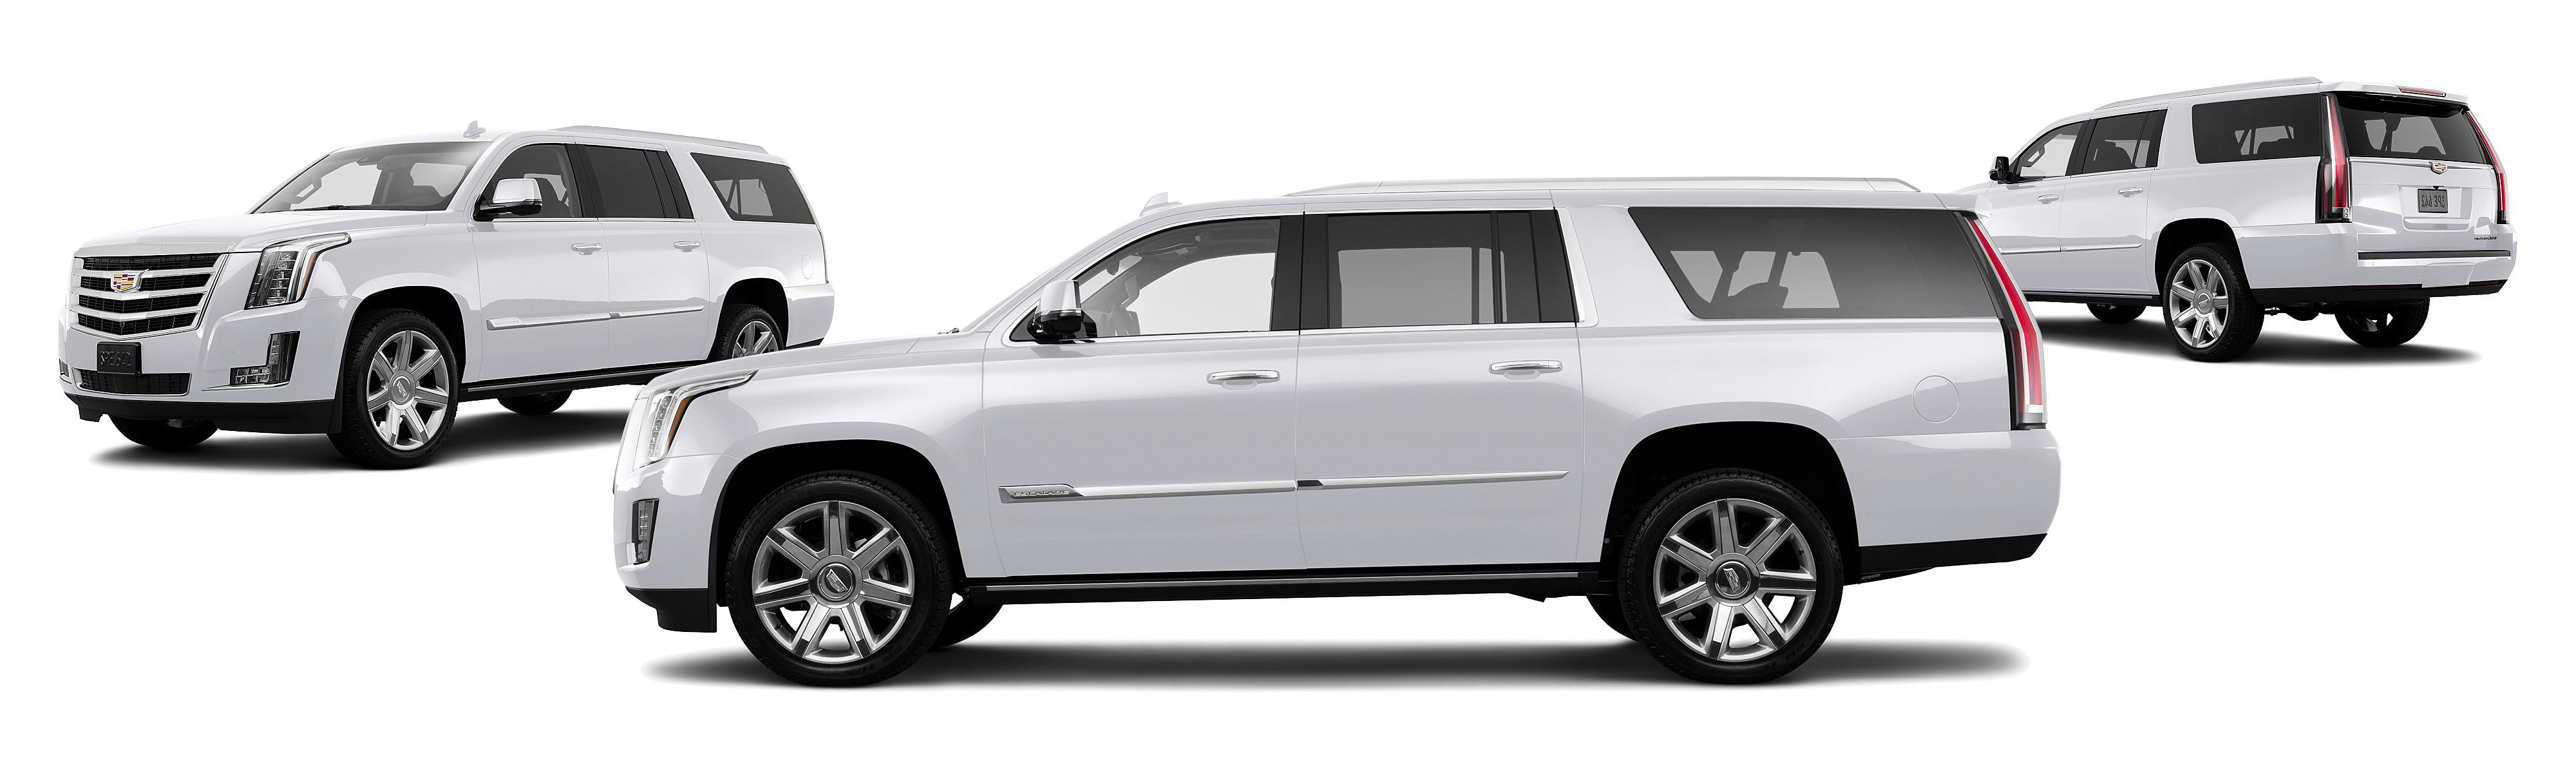 esv download share gallery best escalade cadillac image platinum and